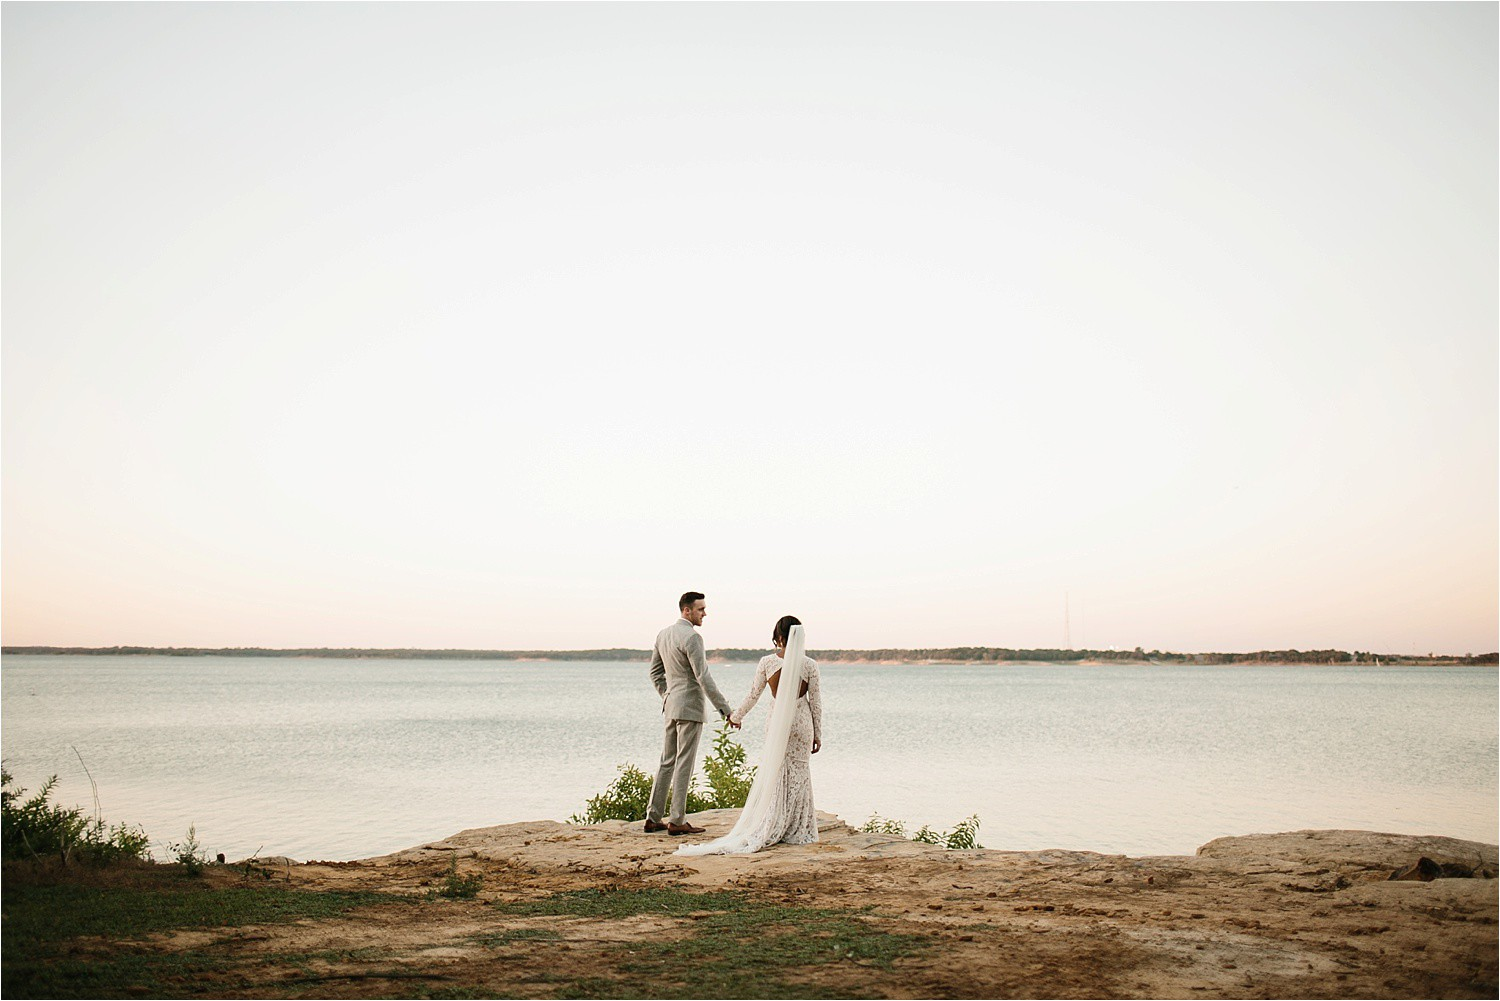 mallory-tyler-__-an-intimate-after-session-at-grapevine-lake-by-north-texas-wedding-photographer-rachel-meagan-photography-_-46